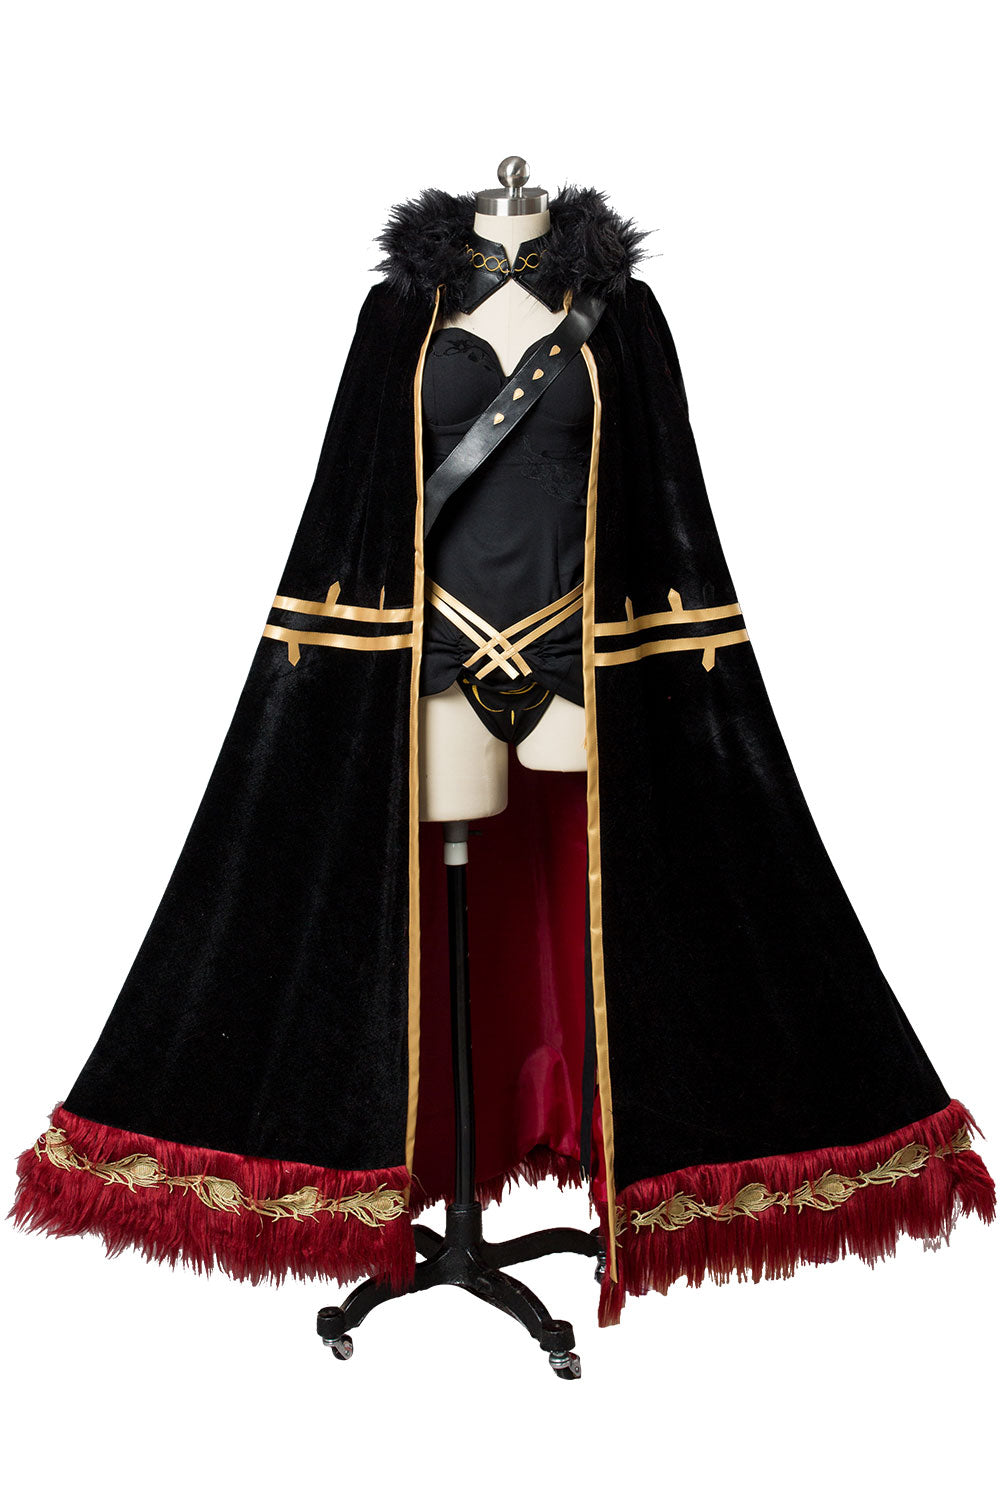 Fate//Grand Order FGO Ereshkigal Outfit Cosplay Costume Outfit